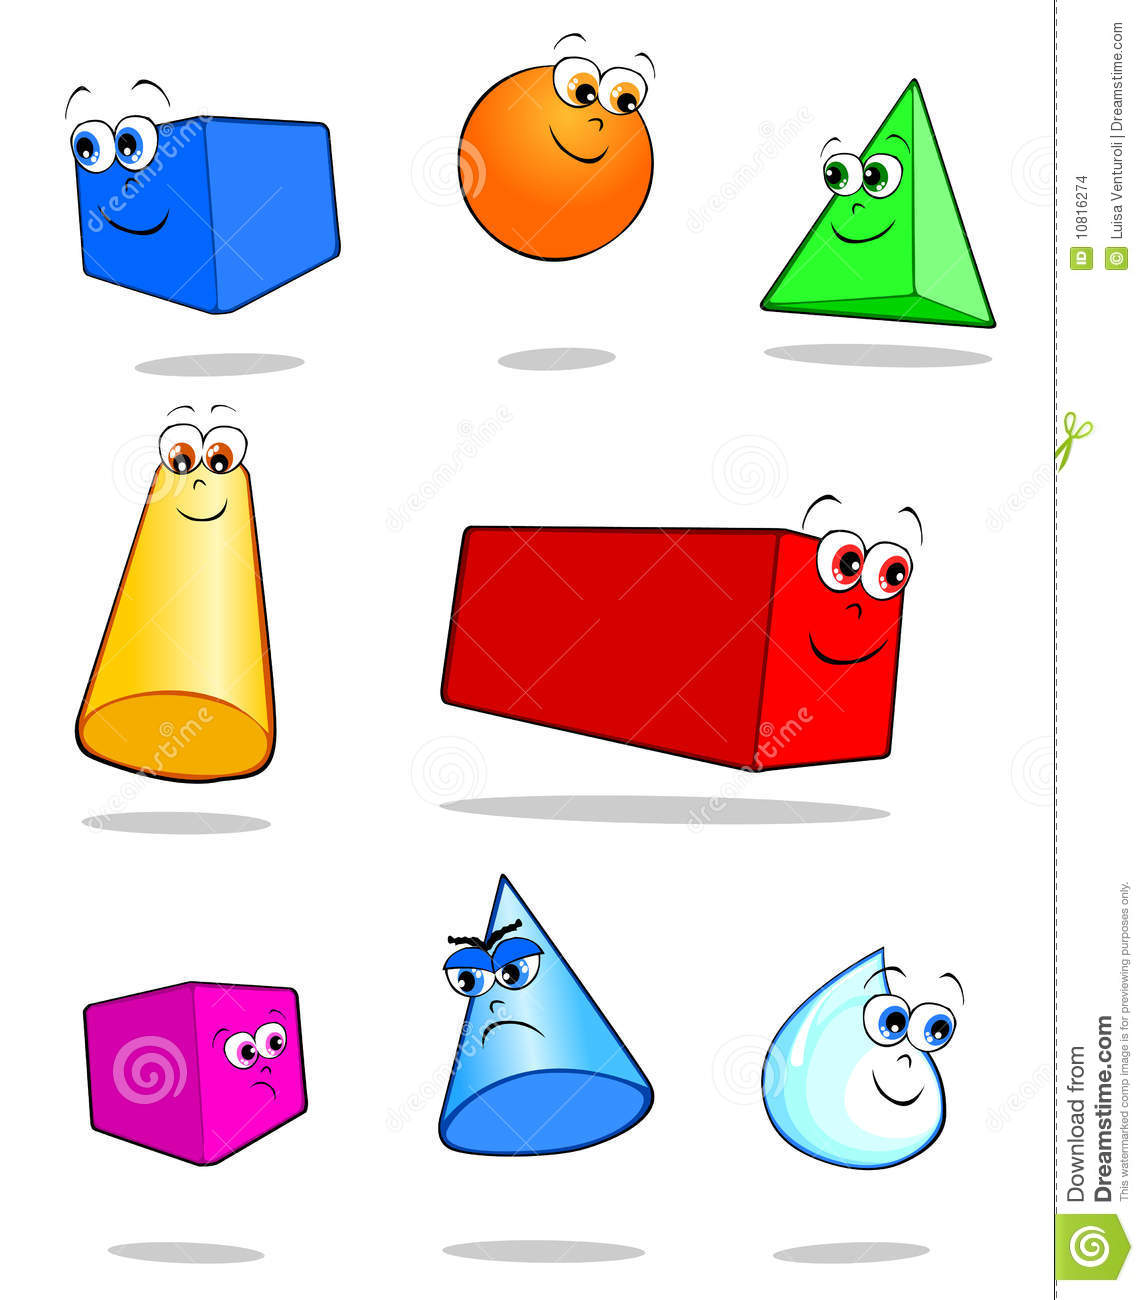 Similiar Solid Geometric Shapes Clip Art Keywords.